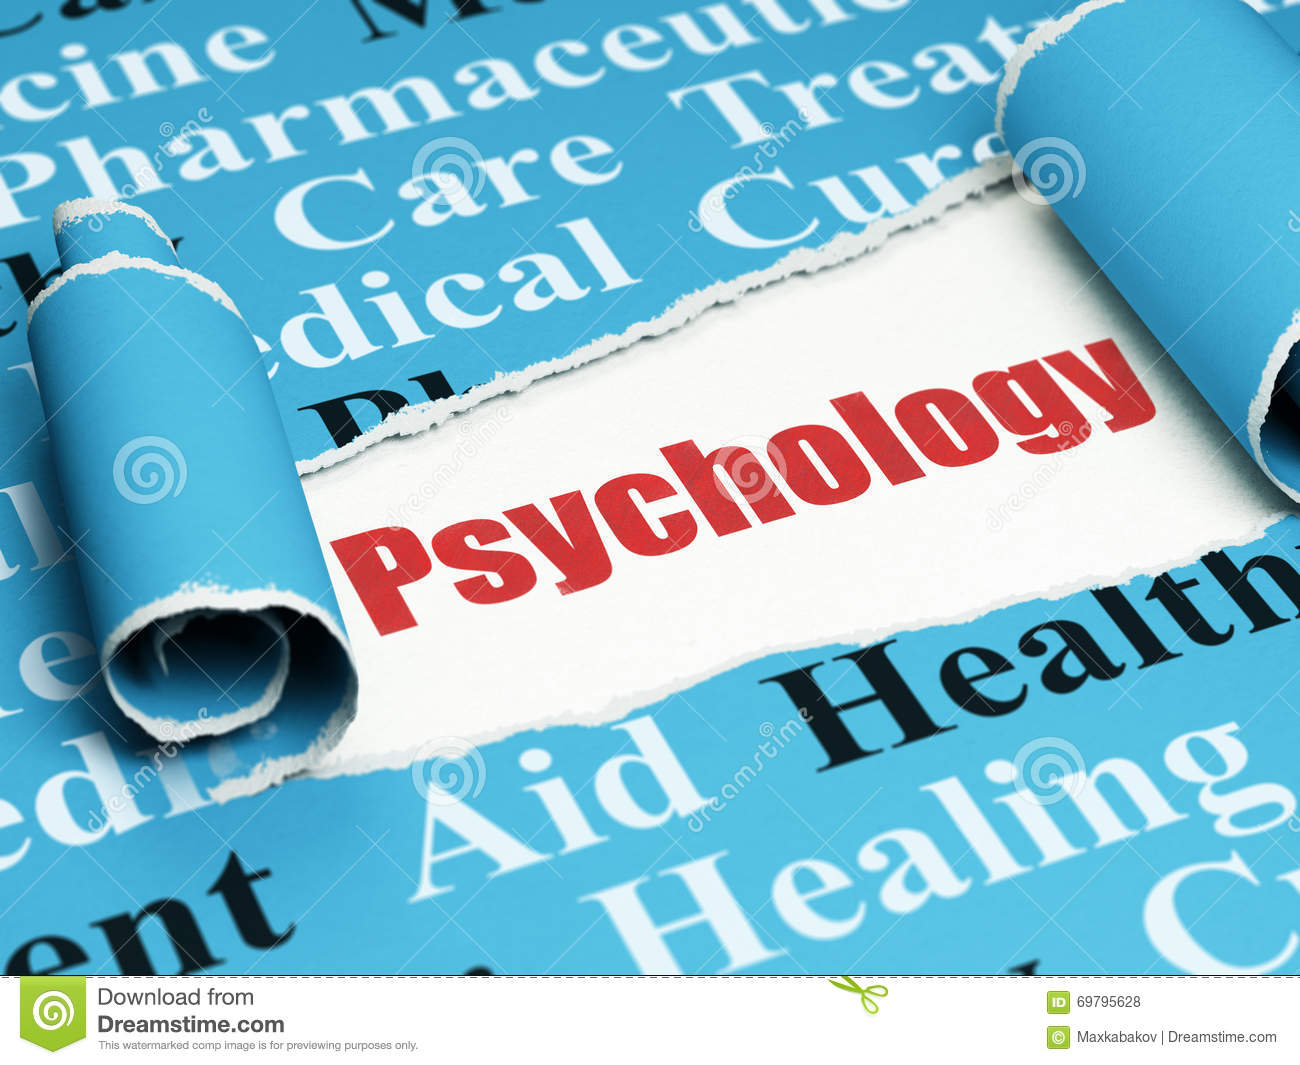 010 Research Paper Psychology On Dreams Health Concept Red Text Under Piece Torn Curled Blue Tag Cloud Rendering Singular Topics Articles 2017 Full